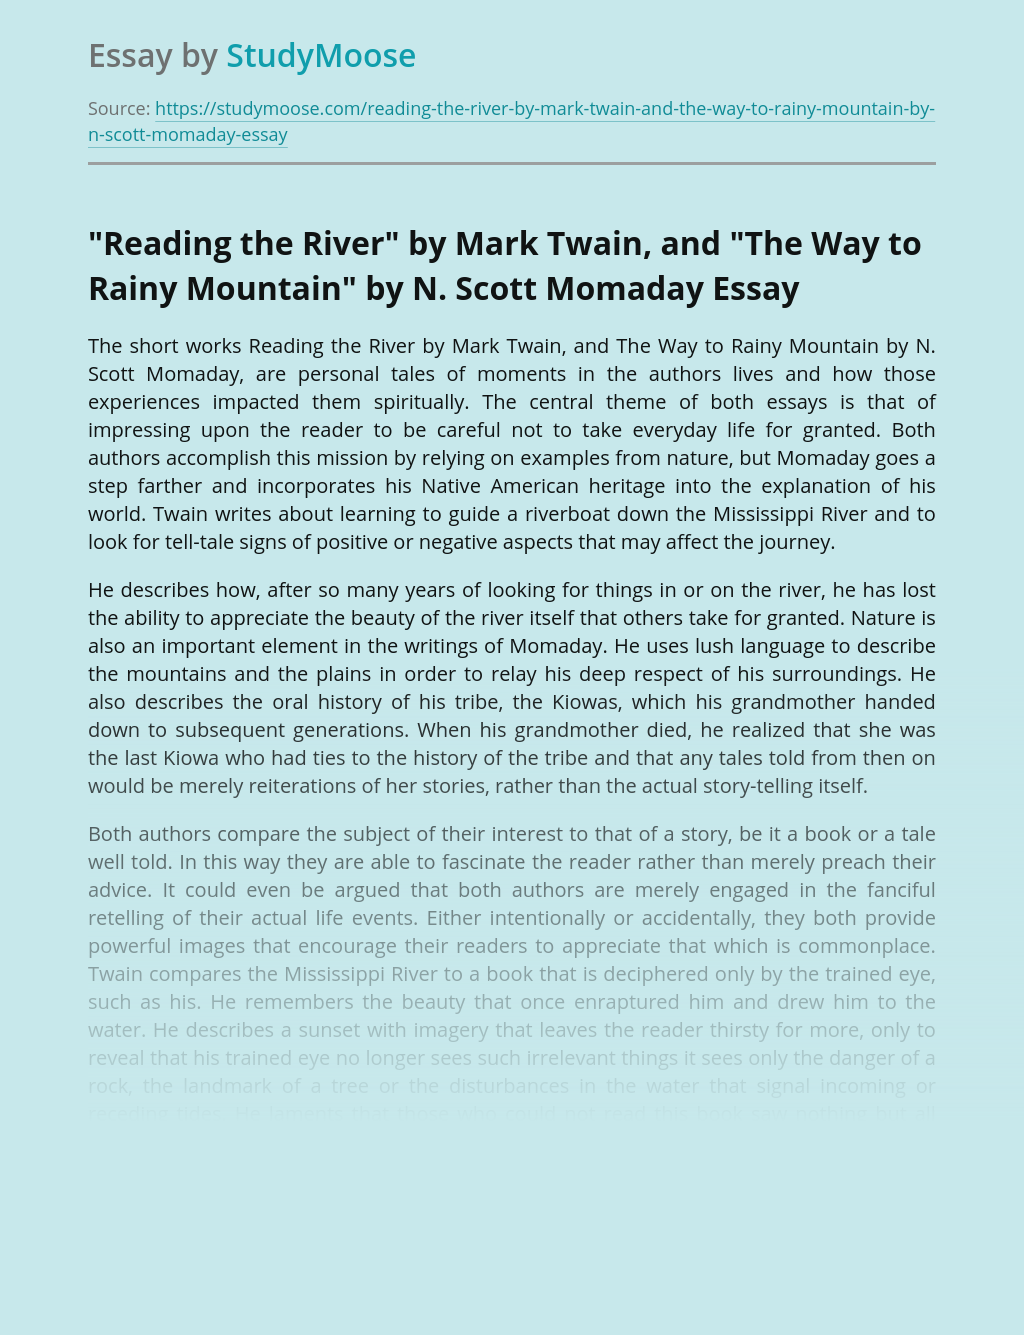 """""""Reading the River"""" by Mark Twain, and """"The Way to Rainy Mountain"""" by N. Scott Momaday"""